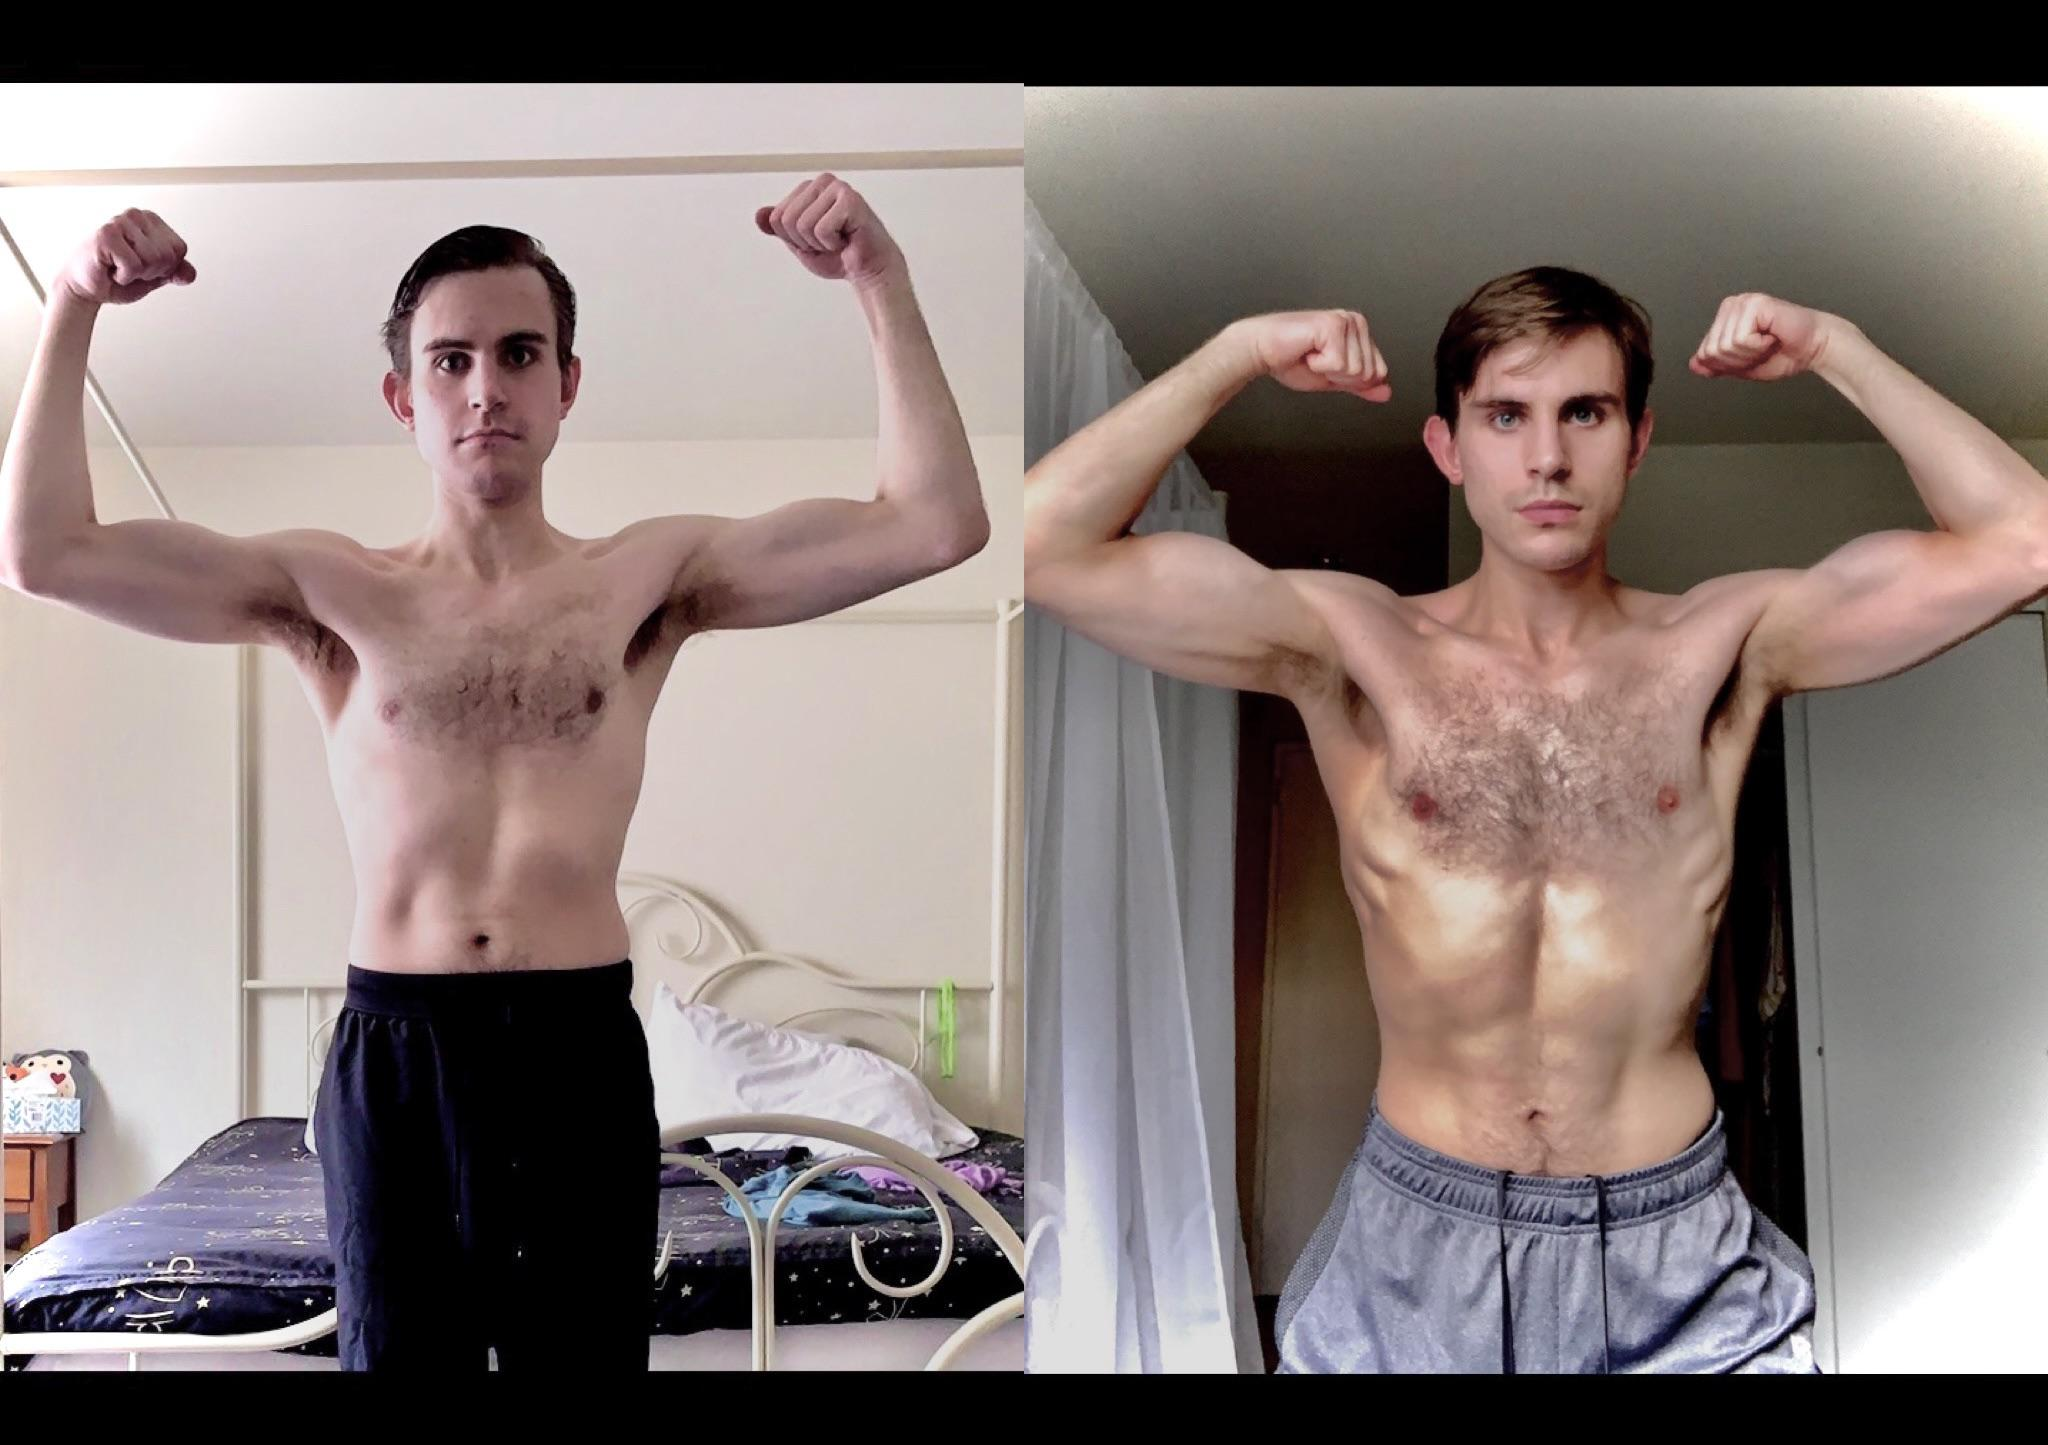 [Image] I started going to the gym in April for the first time in over a year and, for the first time ever, am actually seeing noticeable results!! I've never looked like this before and I'm super excited and happy and needed to share with folks! (Left: 4/20/2021-Right 6/18/2021)